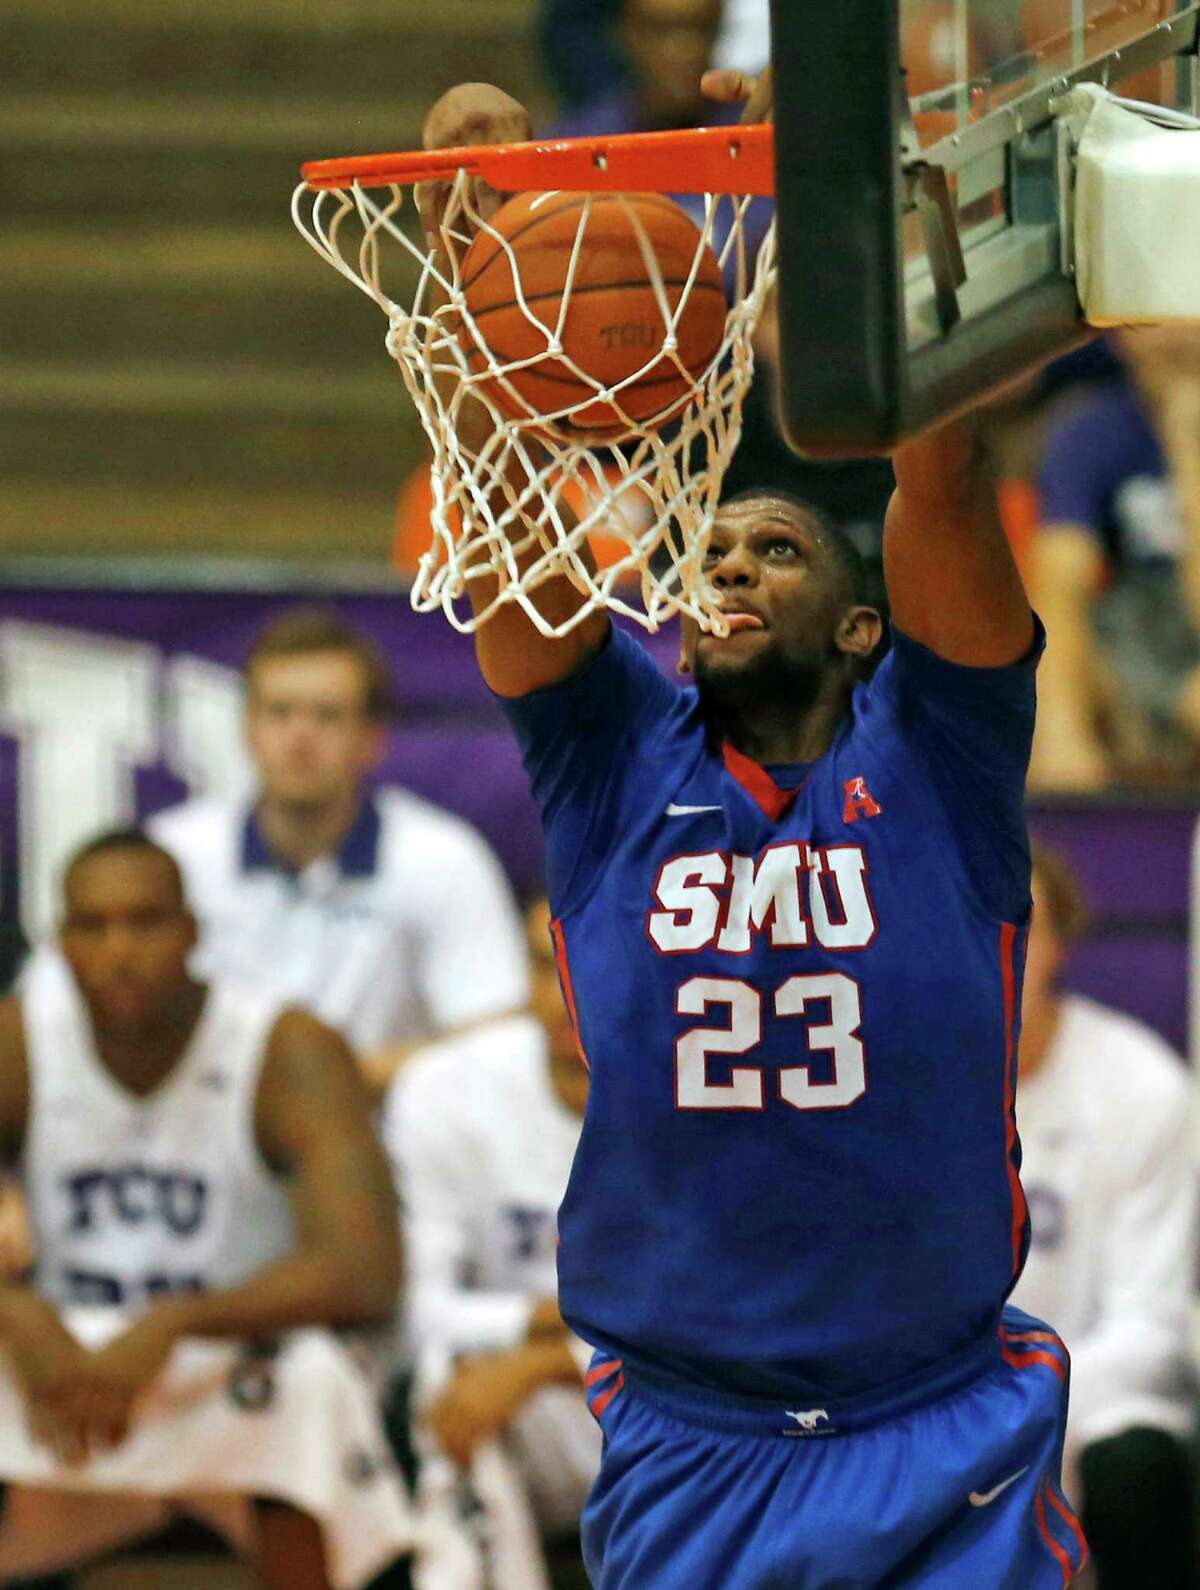 Four hot teamsSMU The 4-0 Mustangs aren't letting their NCAA sanctions old them back as they entered the rankings at No. 22 in the AP poll this week. SMU has five players averaging double digits in scoring and is led by Keith Frazier's 14.0 points per outing.